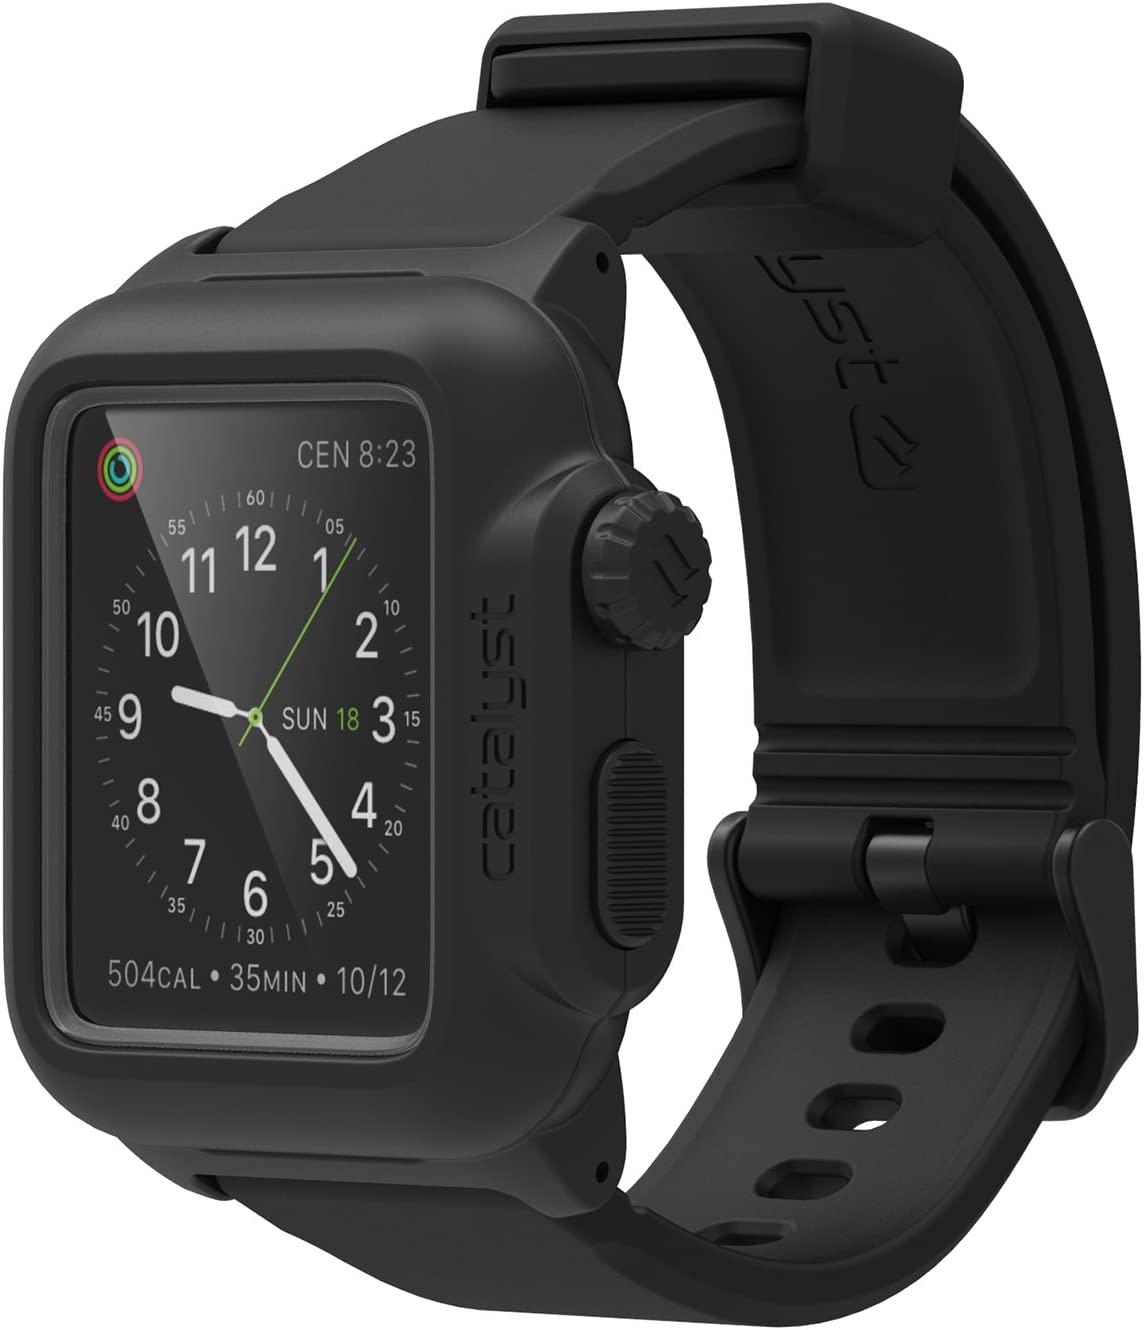 Waterproof Case Designed for Apple Watch Series 1 42mm by Catalyst, Shock Proof Premium Material Quality for Hiking, Swimming (Stealth Black)